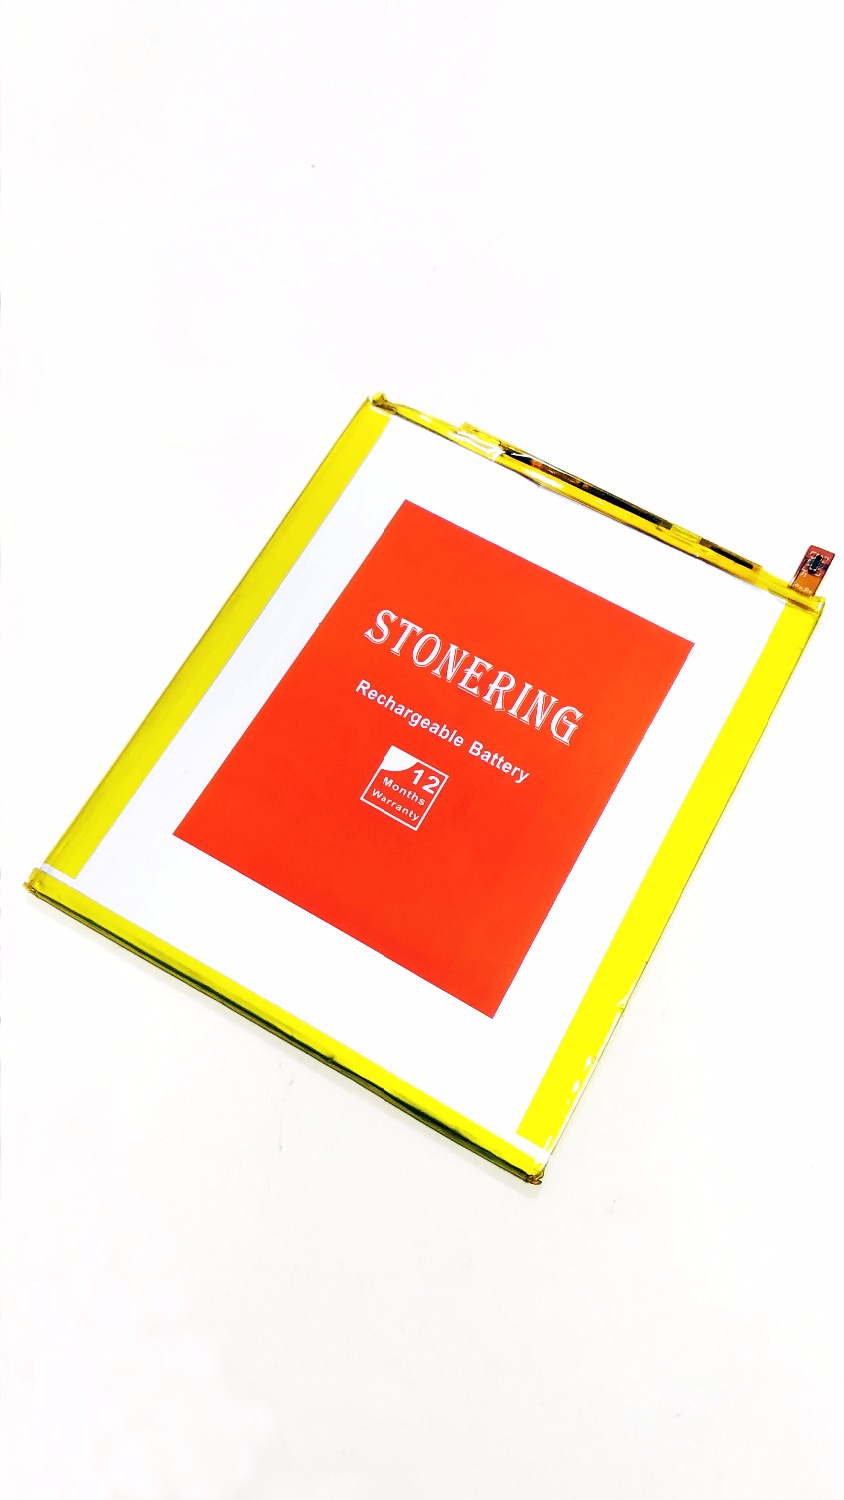 Stonering battery <font><b>5100mAh</b></font> HB2899C0ECW (Wire Cable) for Huawei M3 M3-BTV-W09 M3-BTV-DL09 Tablet PC image